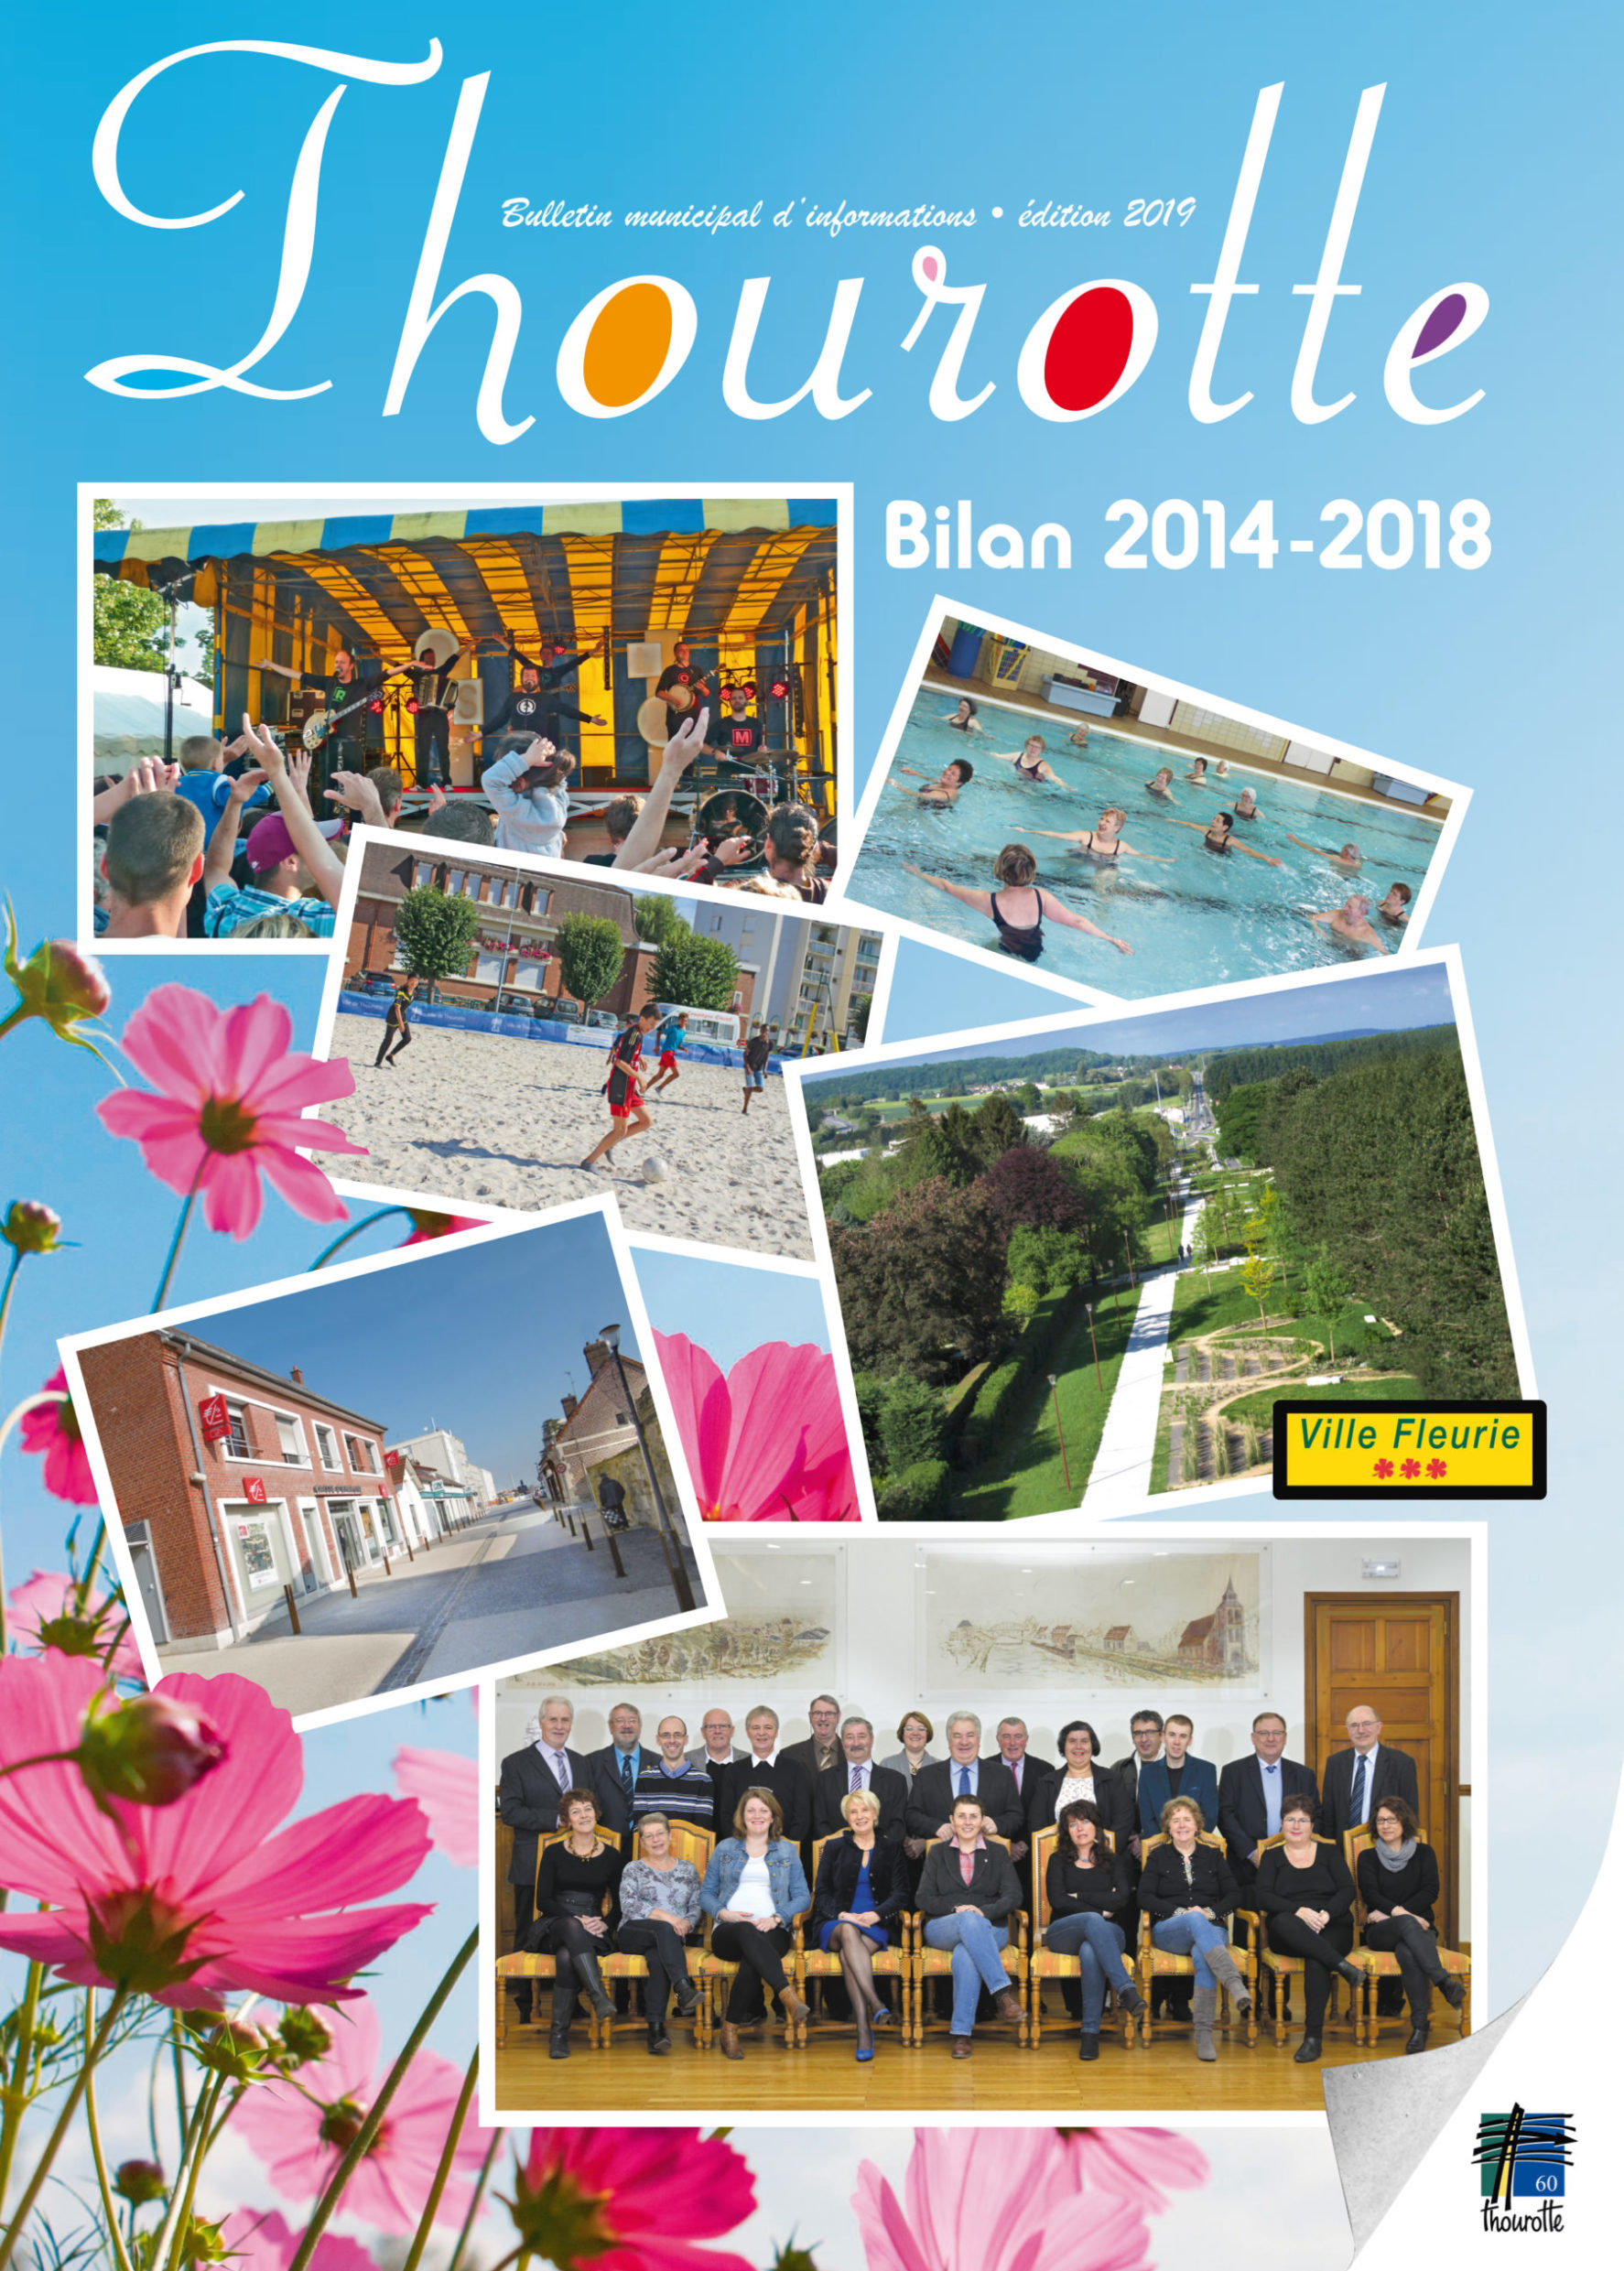 Thourotte Bulletin 2019 couverture